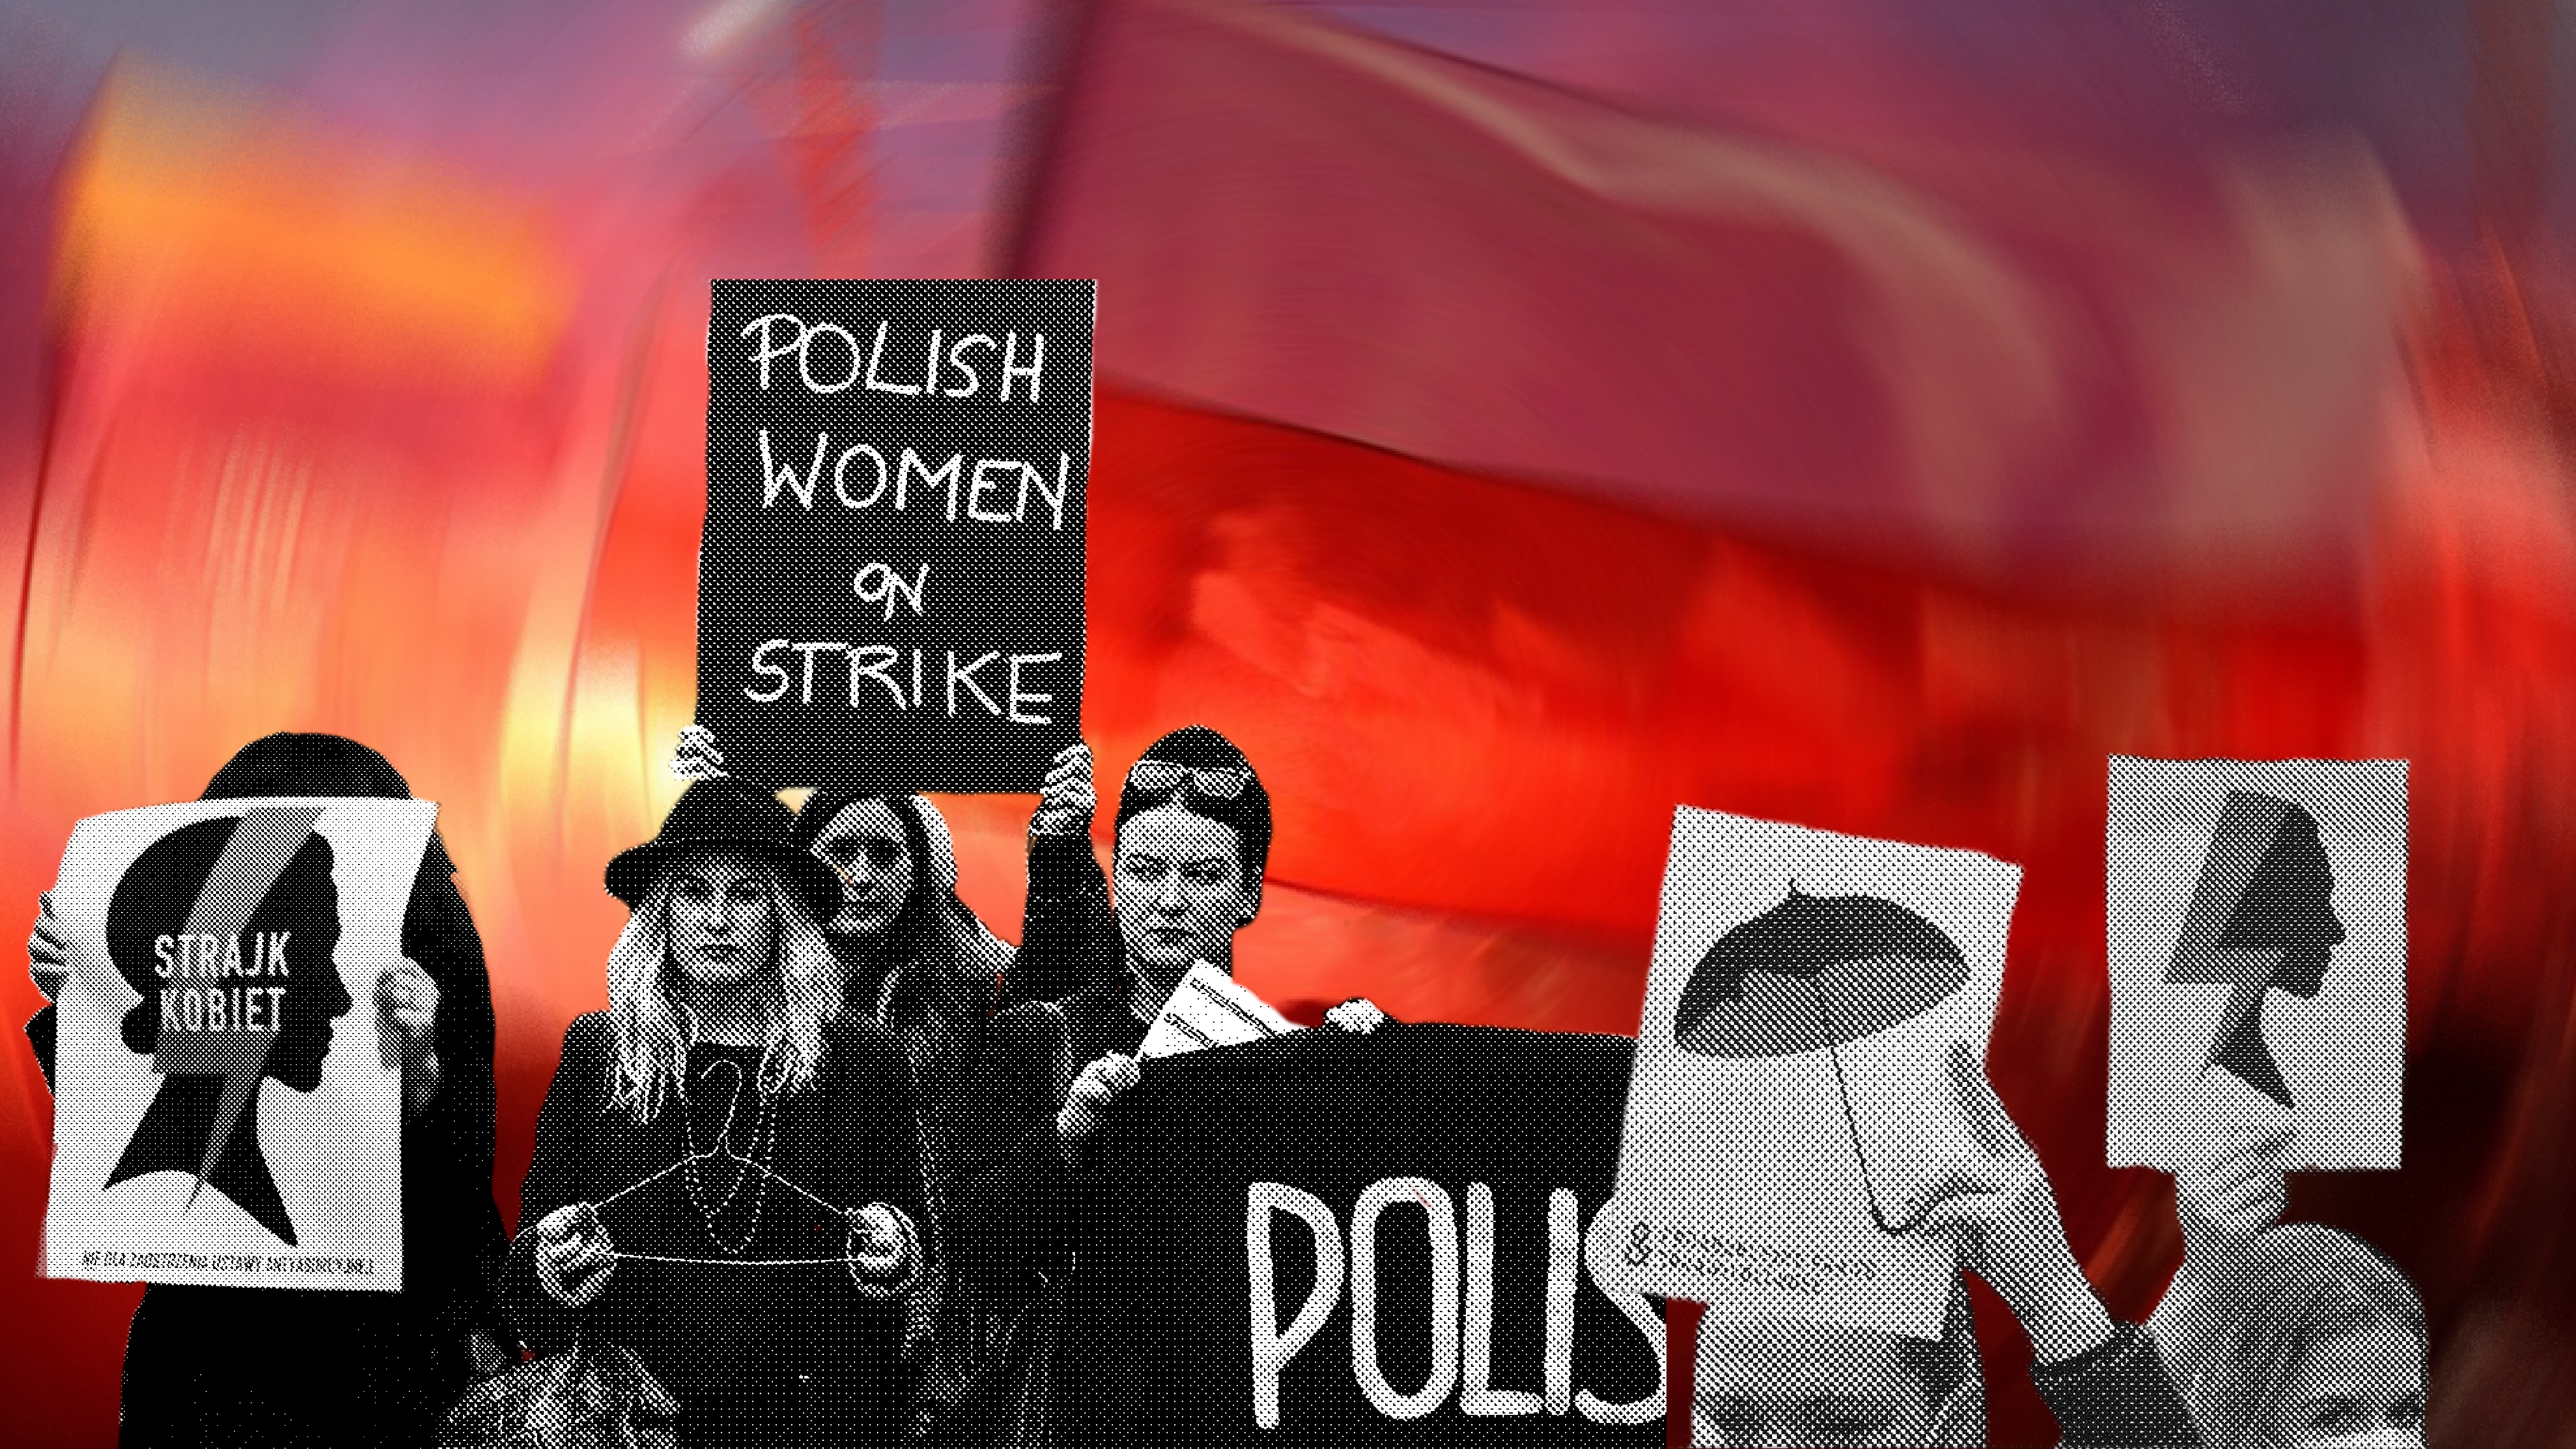 A red background lies behind Polish women protesting anti-abortion laws.